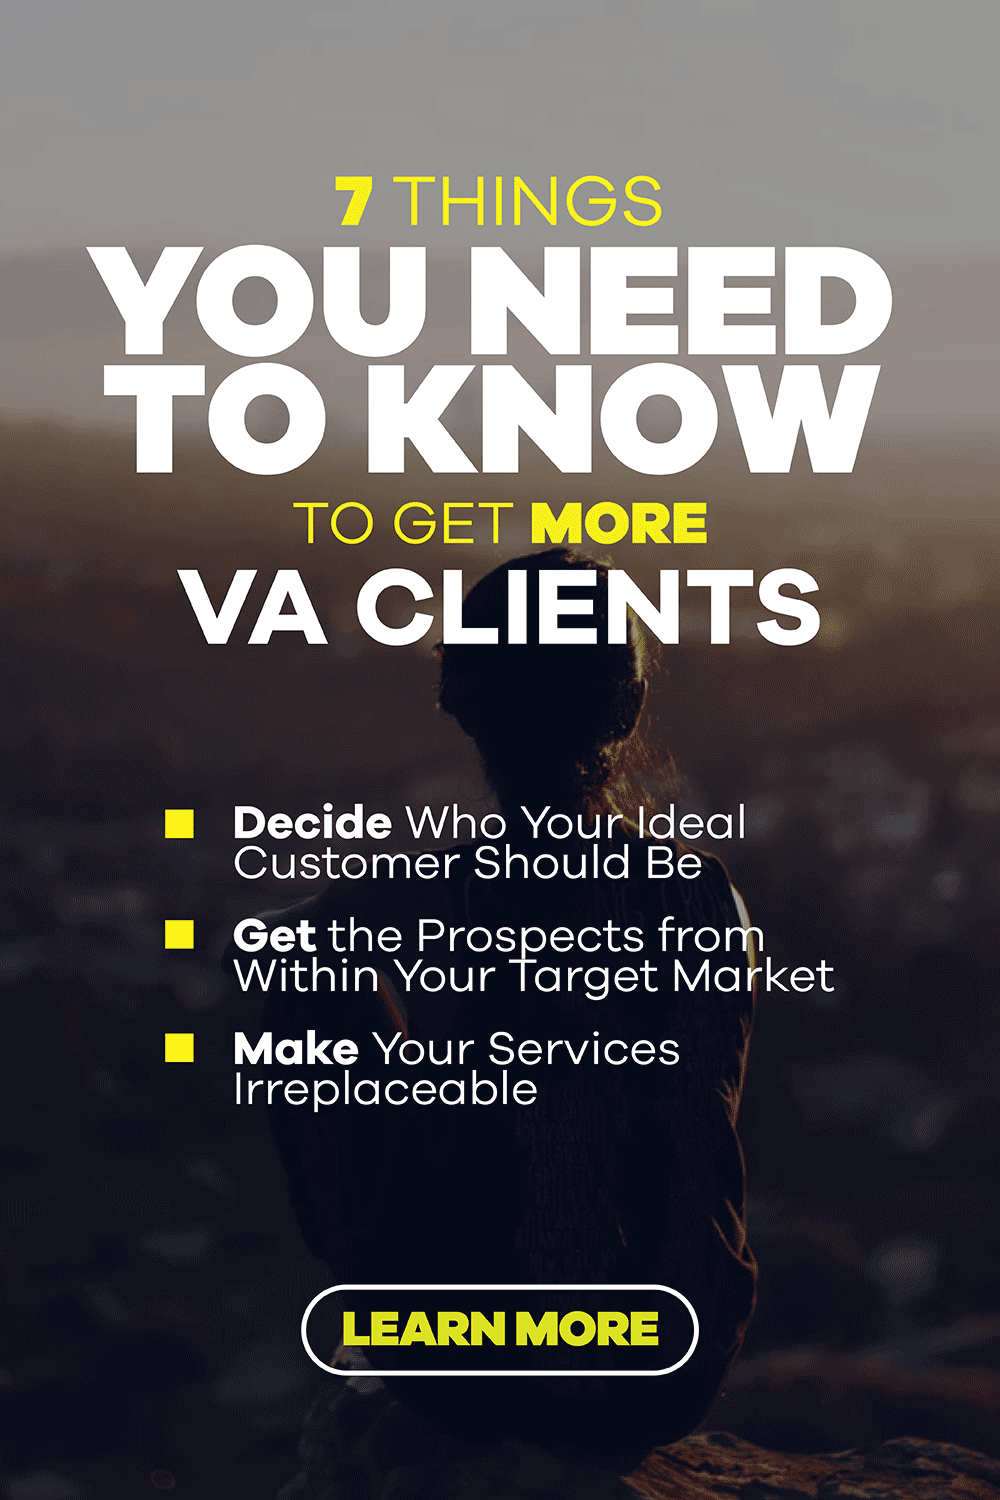 7 things to know to more VA clients